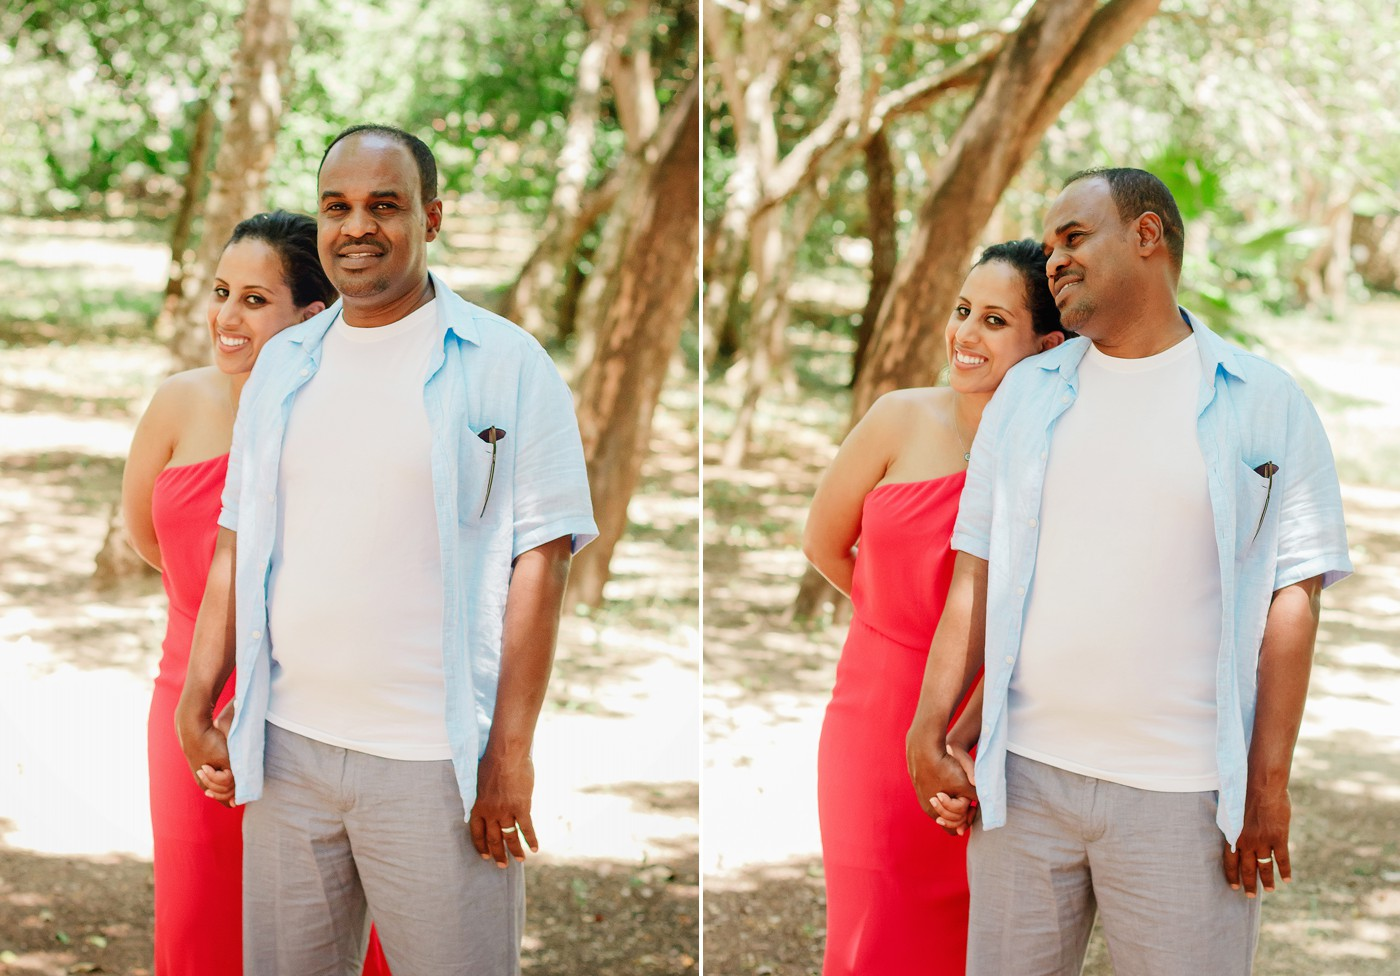 This adorable pair are planning a spectacular Honeymoon in Diani Beach.